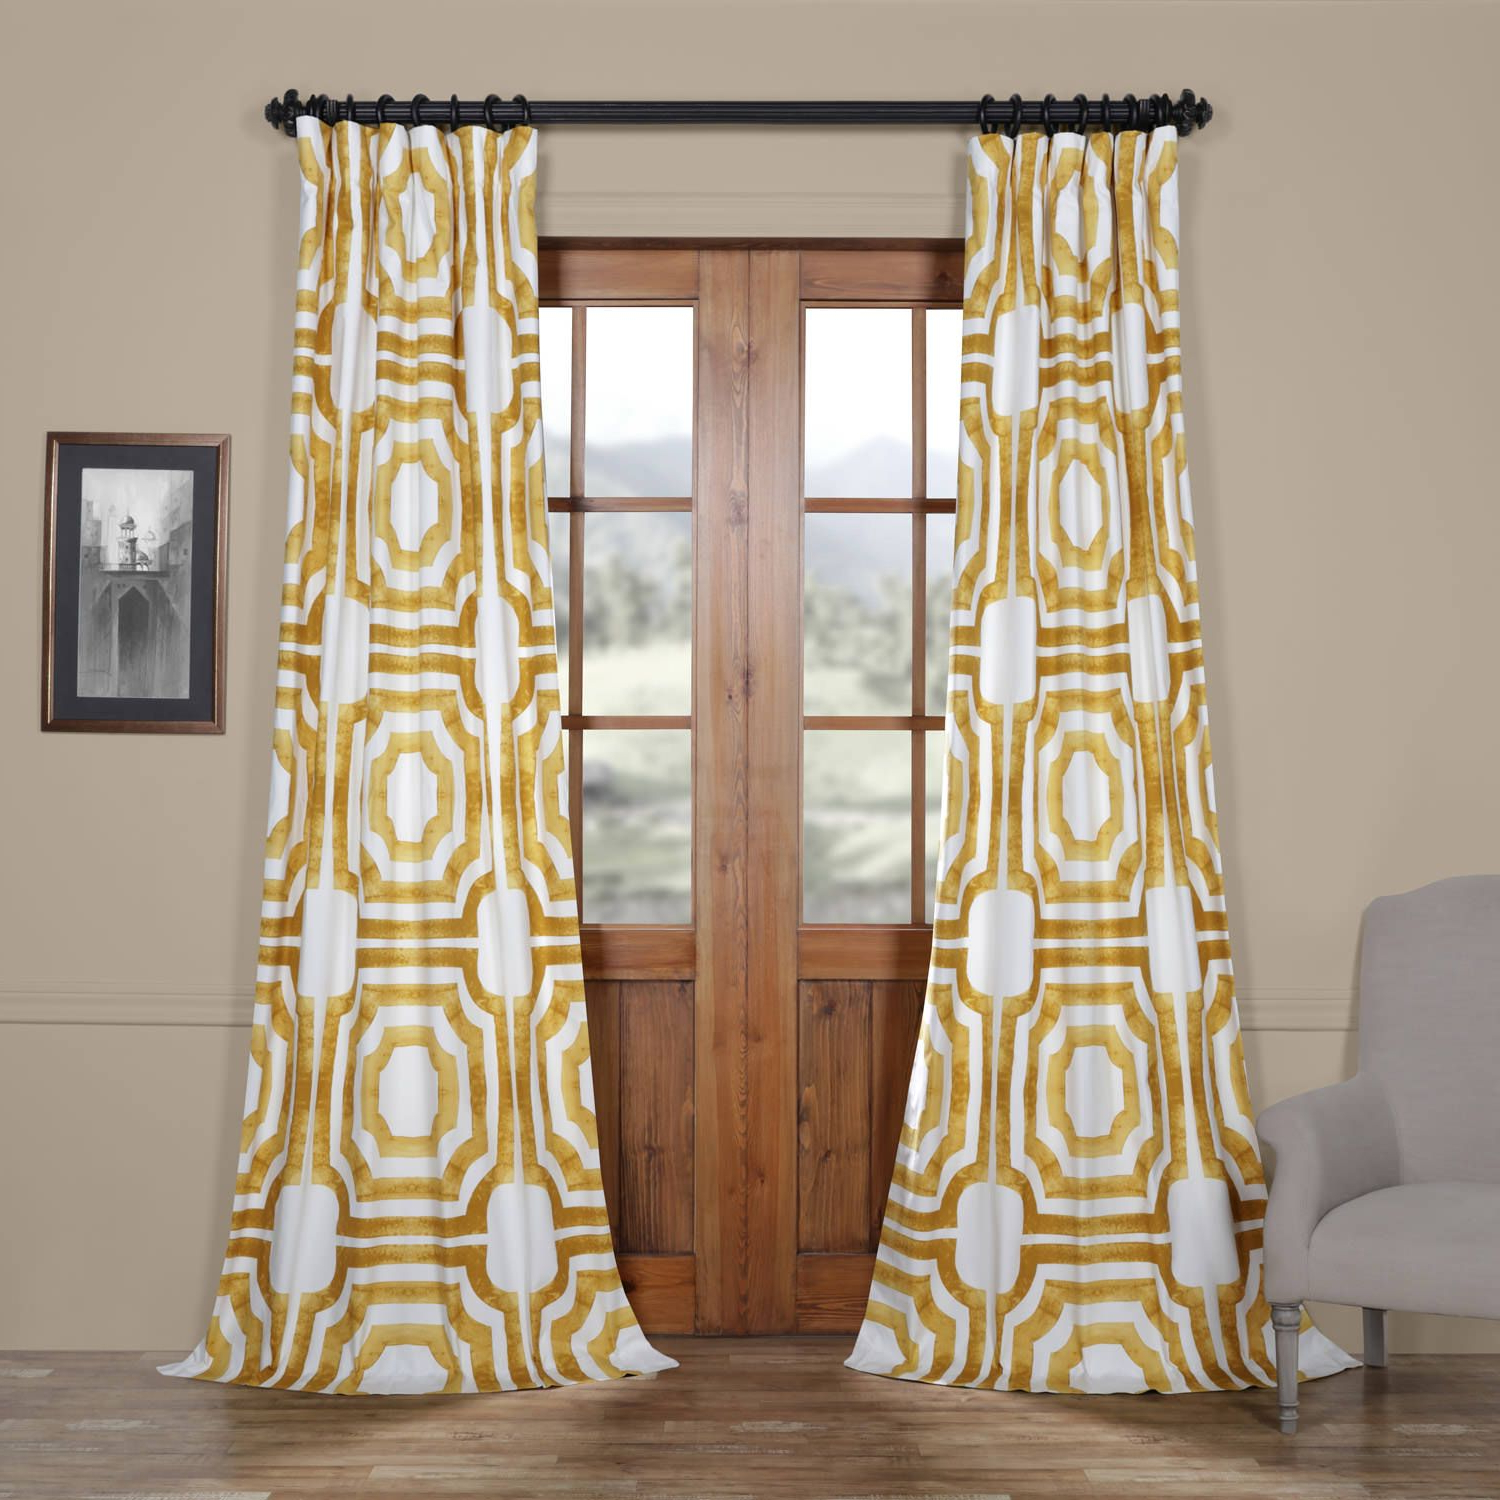 Mecca Gold Printed Cotton Curtain (Gallery 10 of 21)